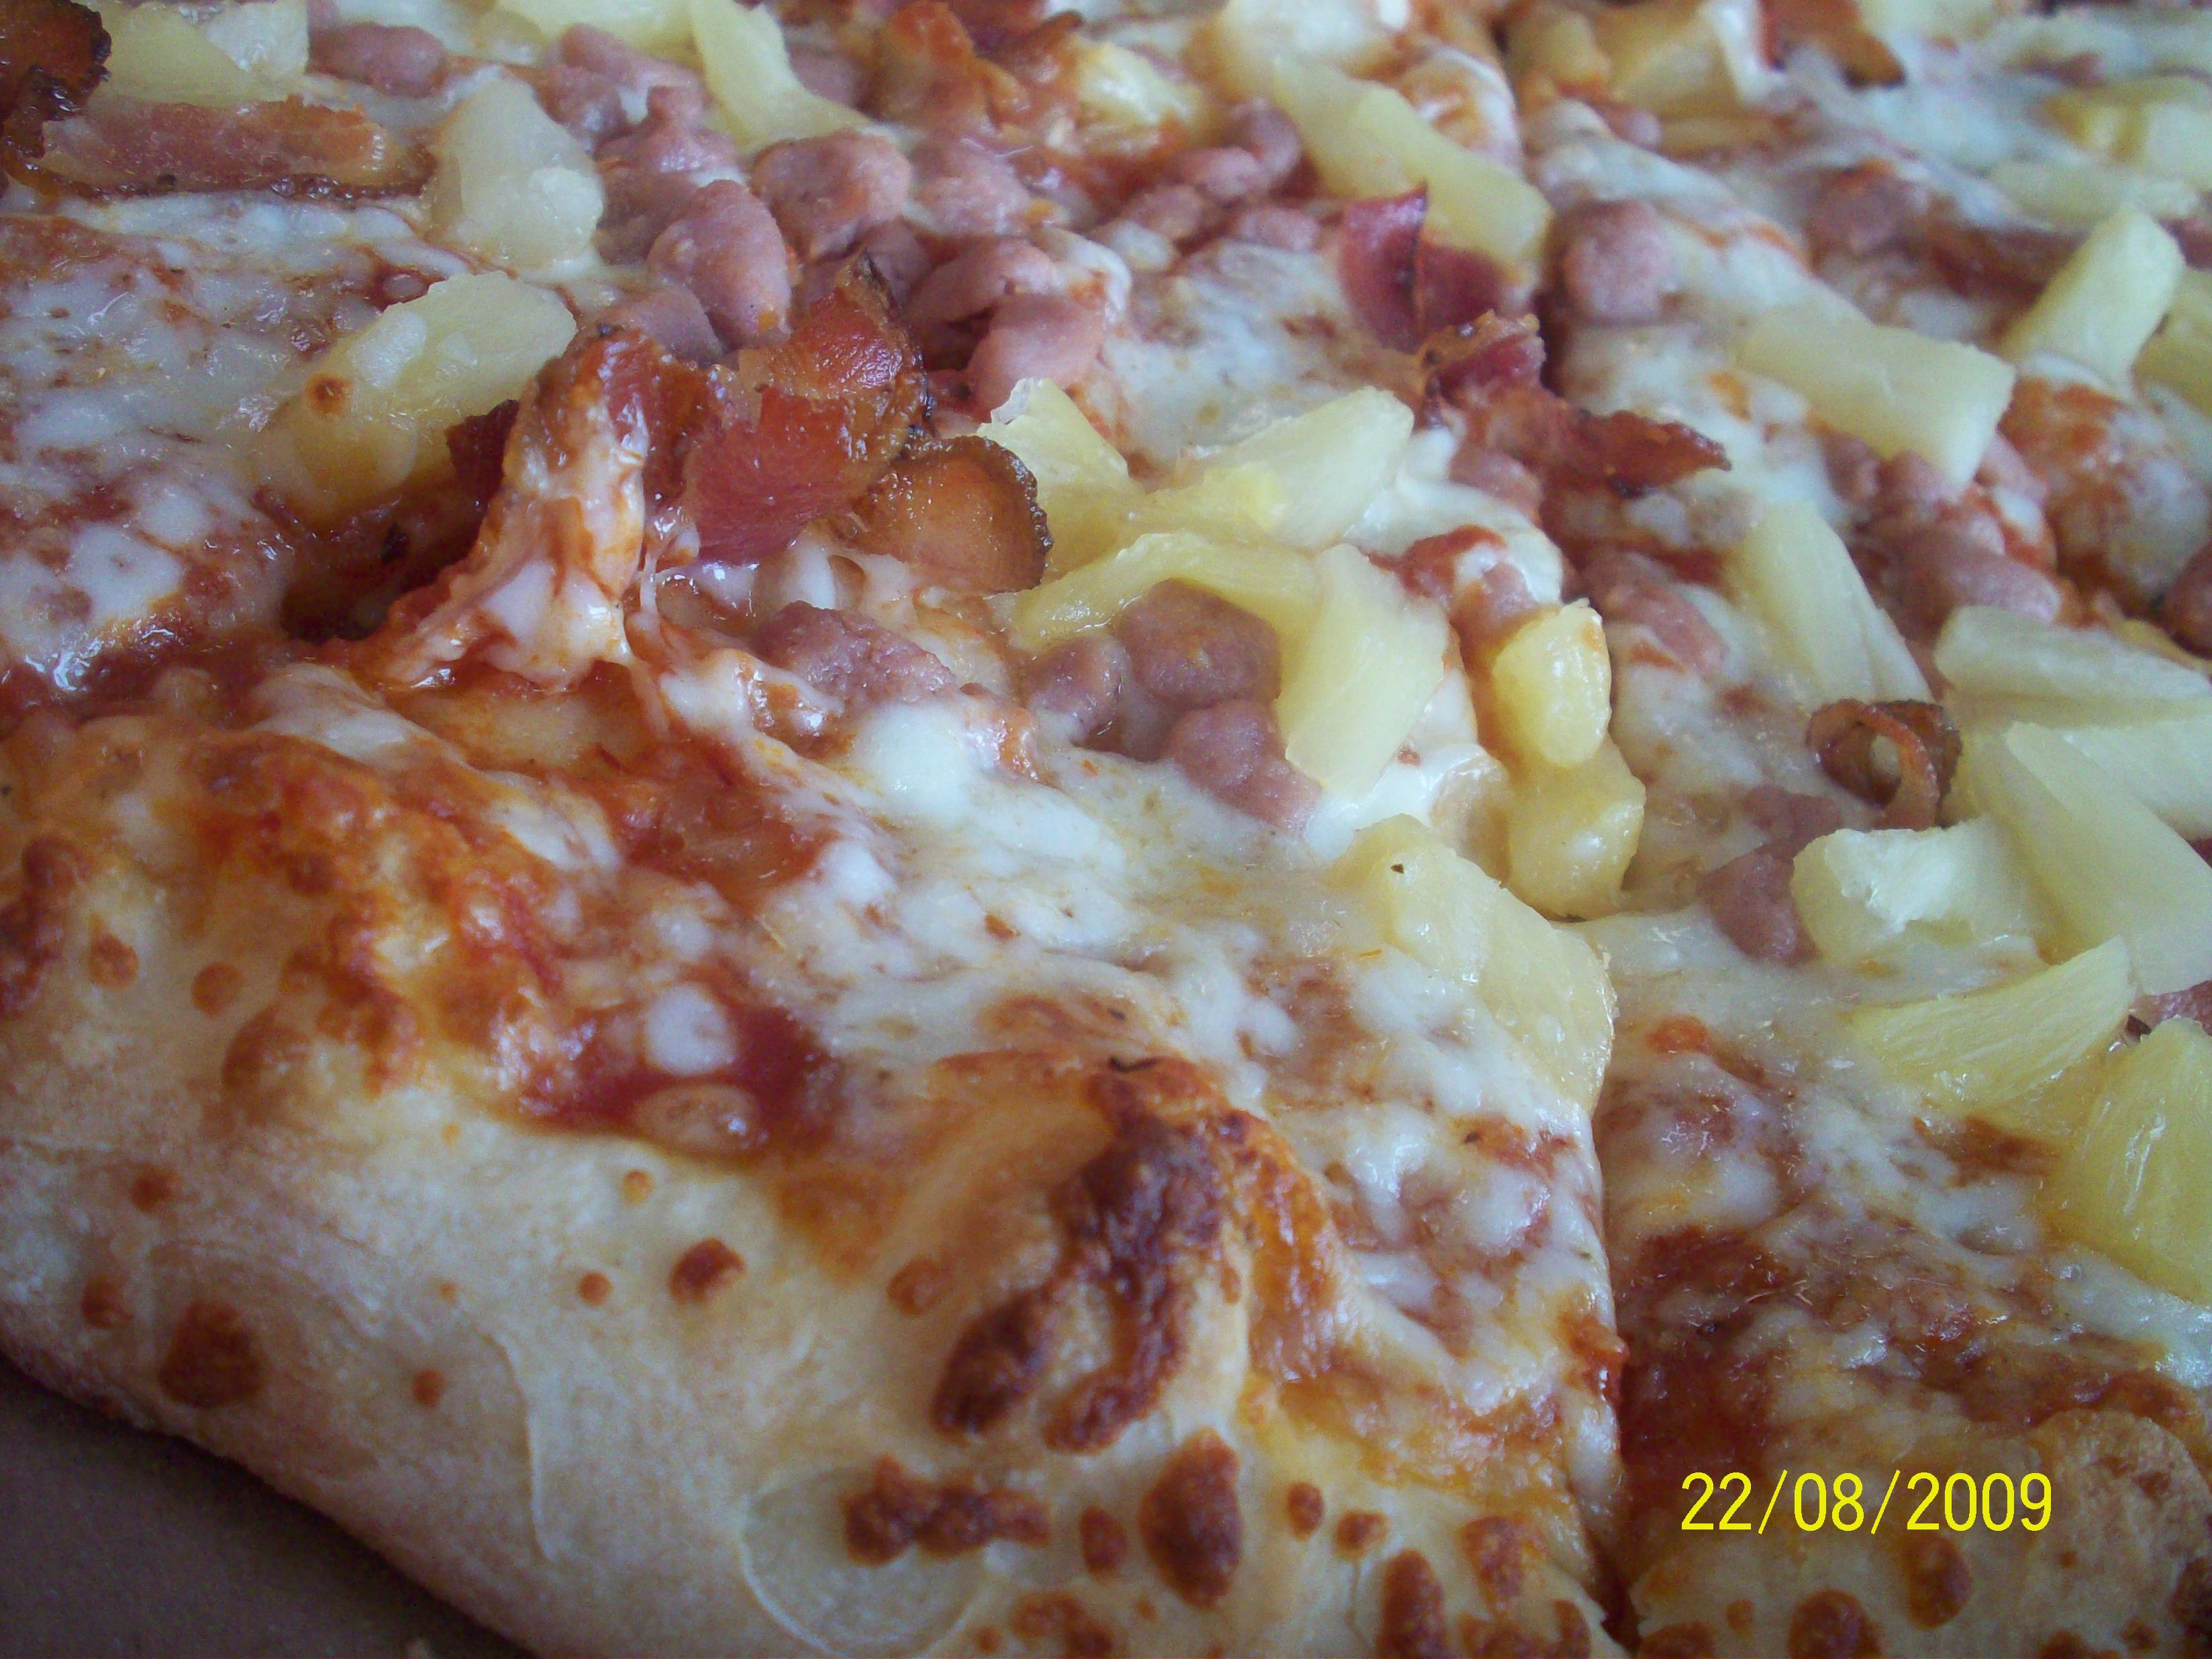 http://foodloader.net/cutie_2009-08-22_Hawaiian_Pizza.jpg